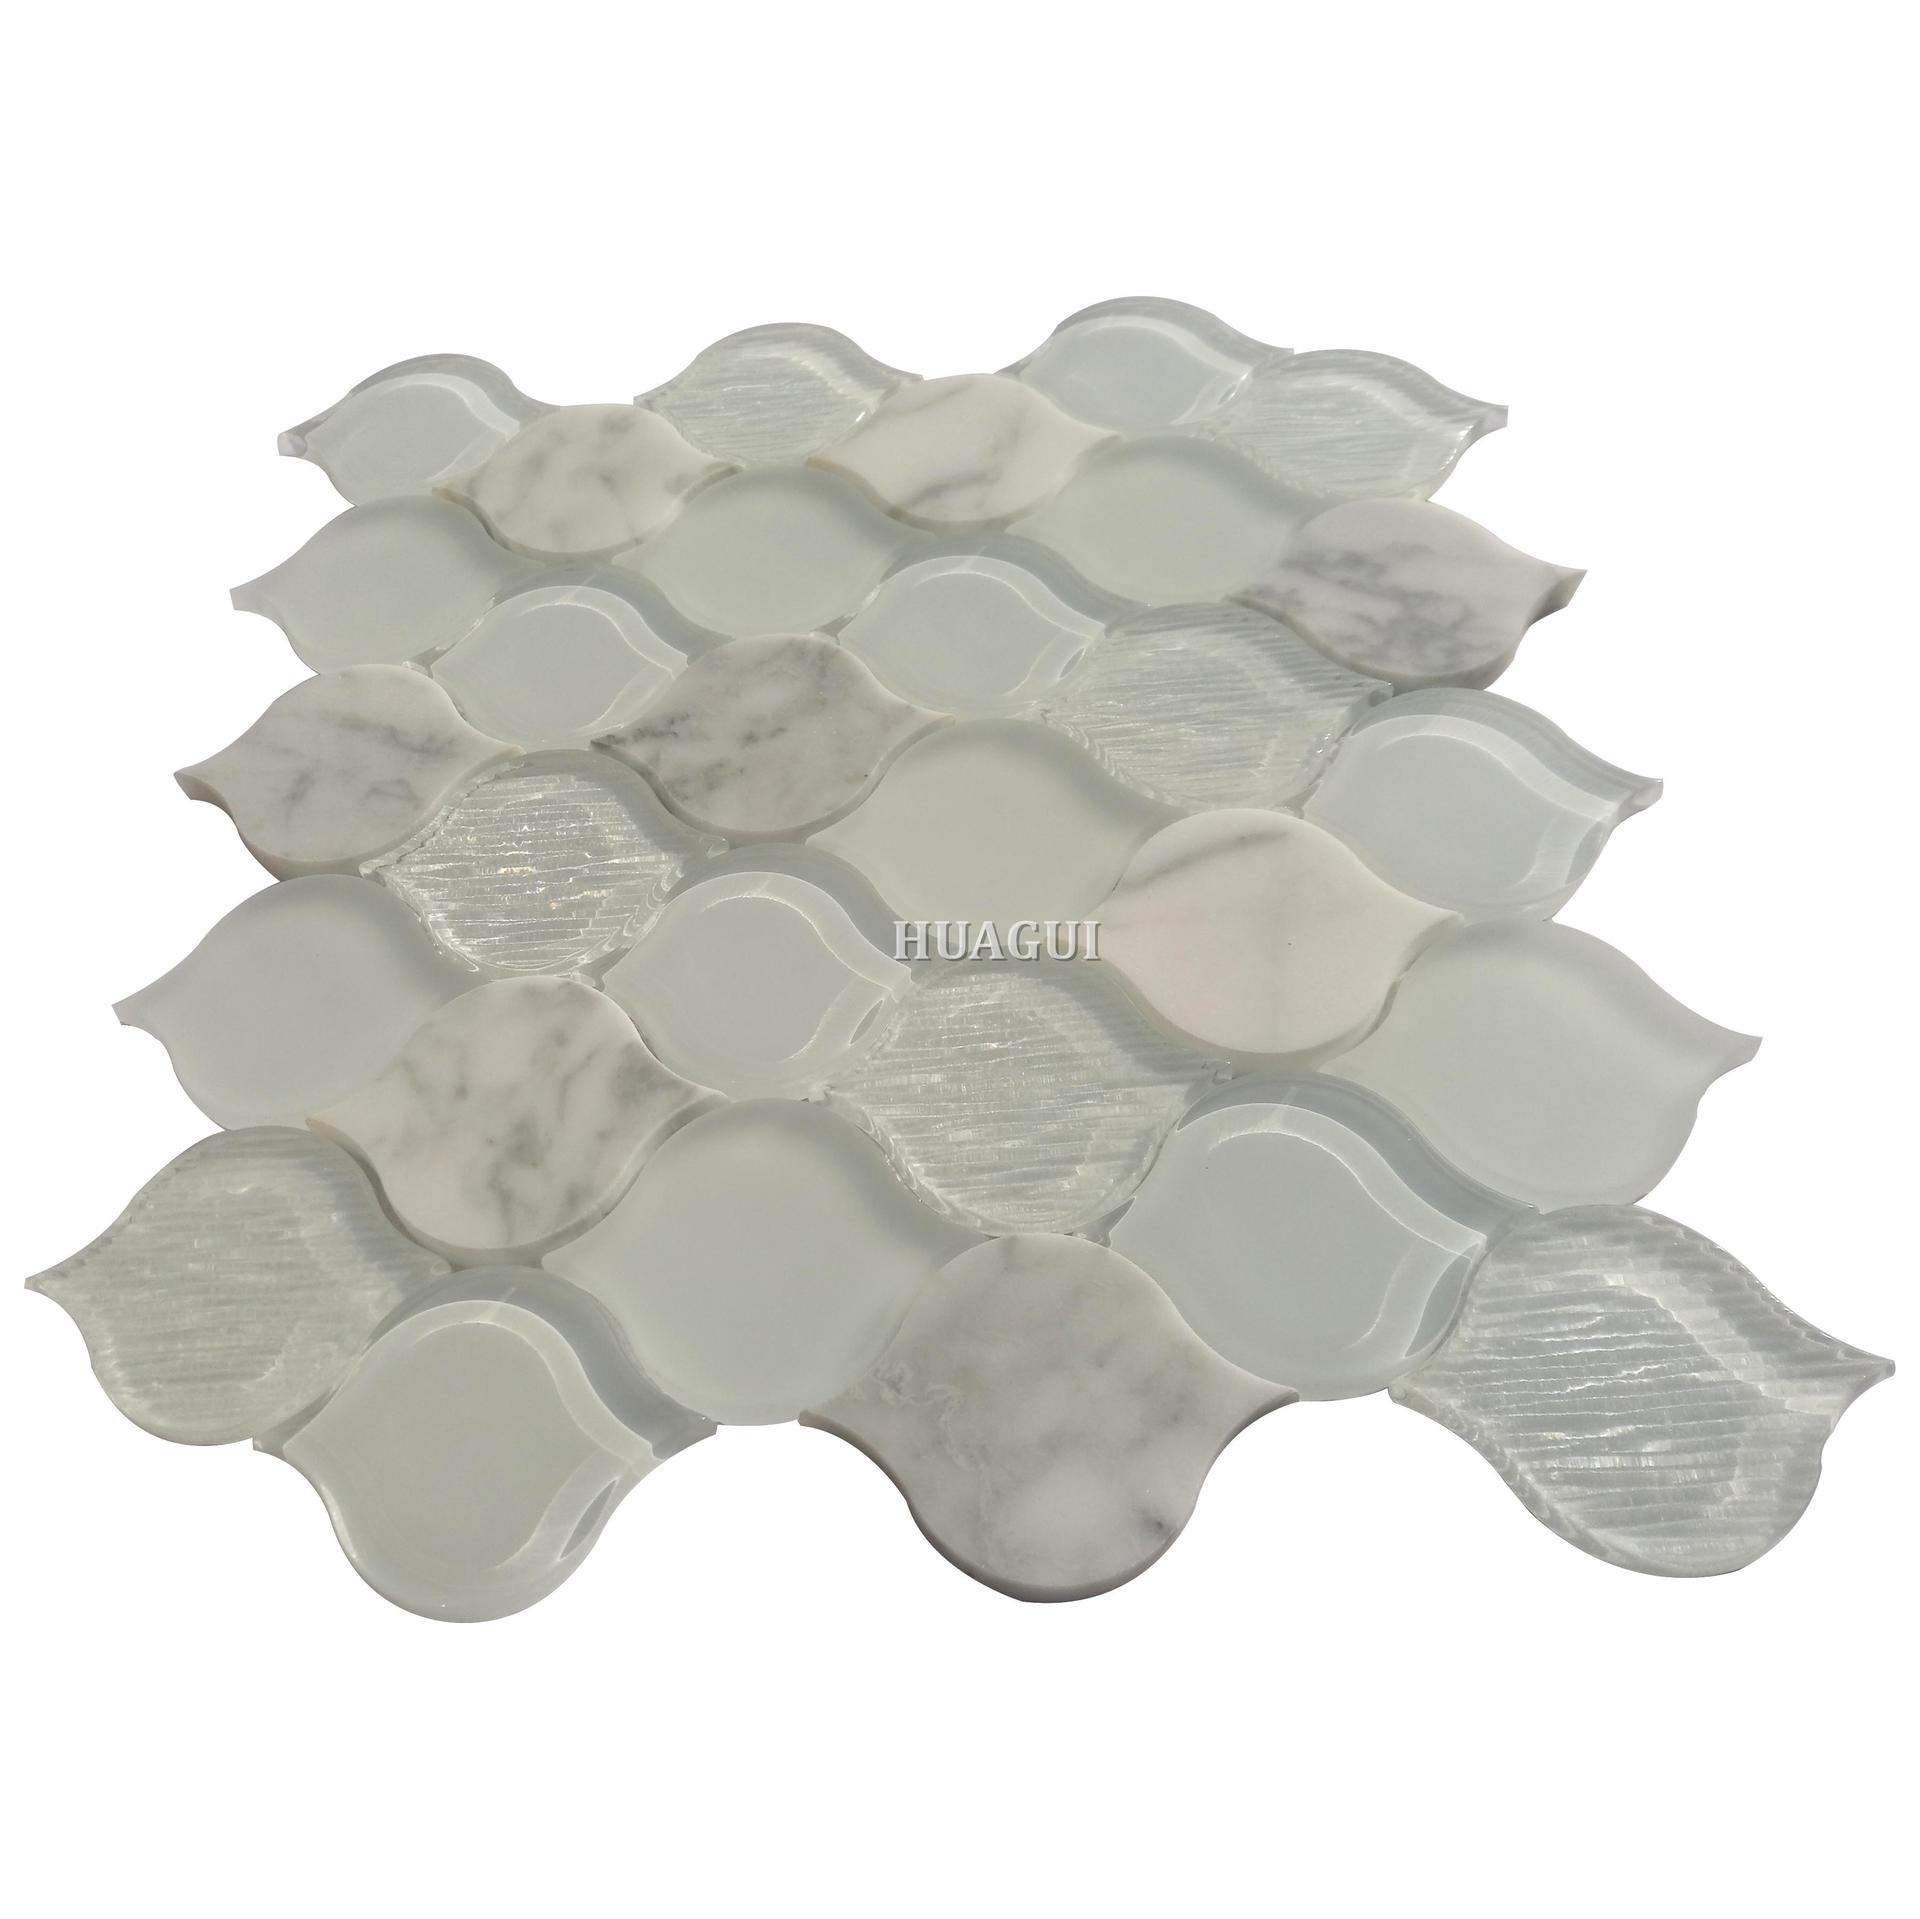 USA hot sale white backsplash lantern glass and stone mosaic tile for wall